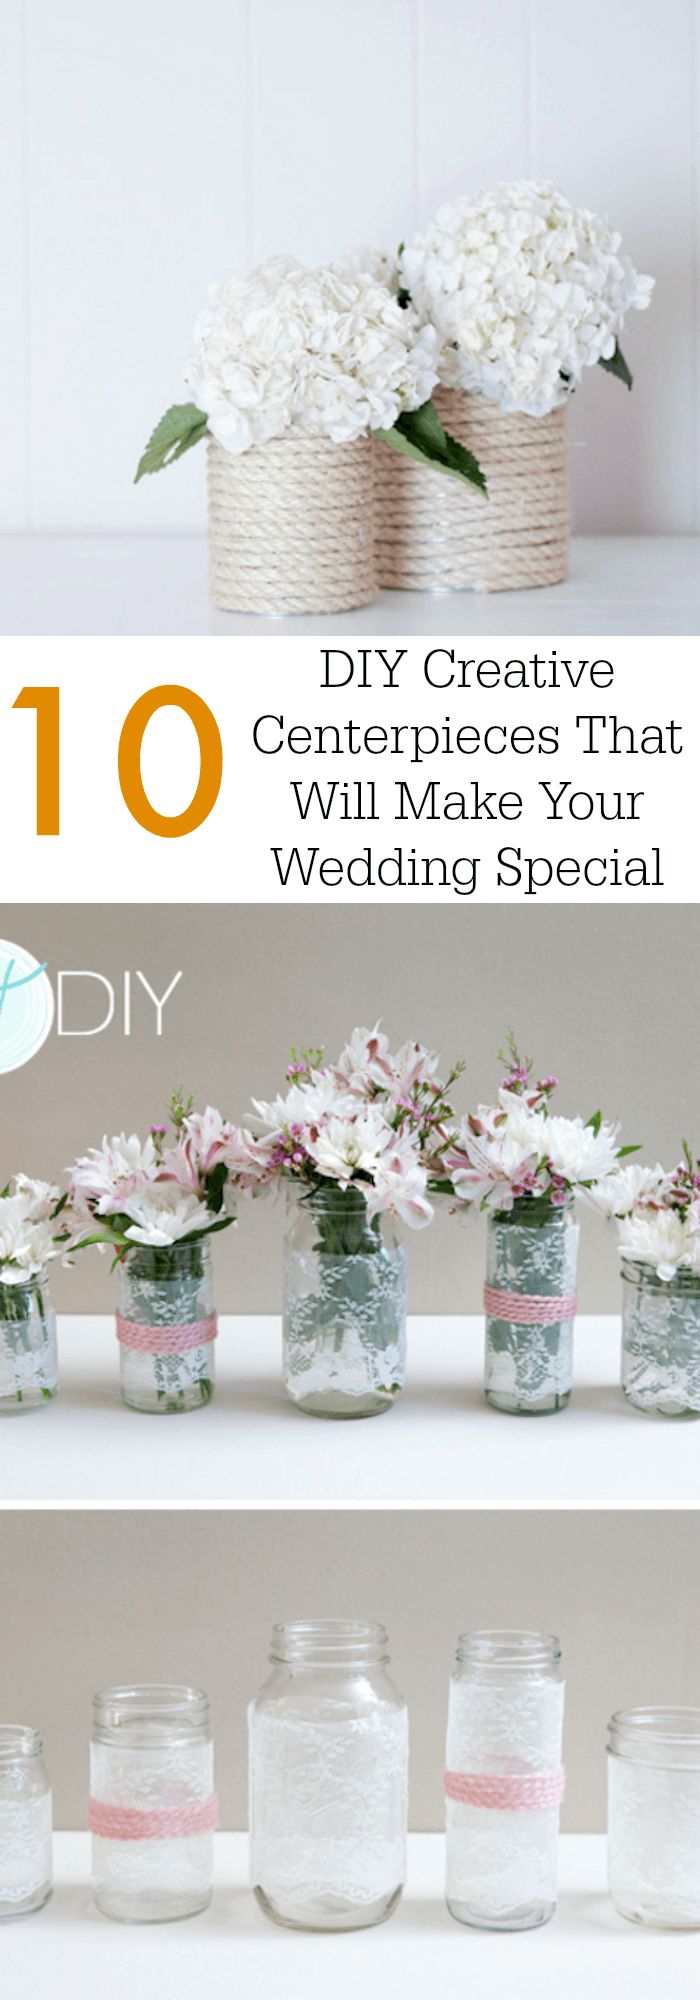 10 best images about Weddings on Pinterest | Wedding decorations ...